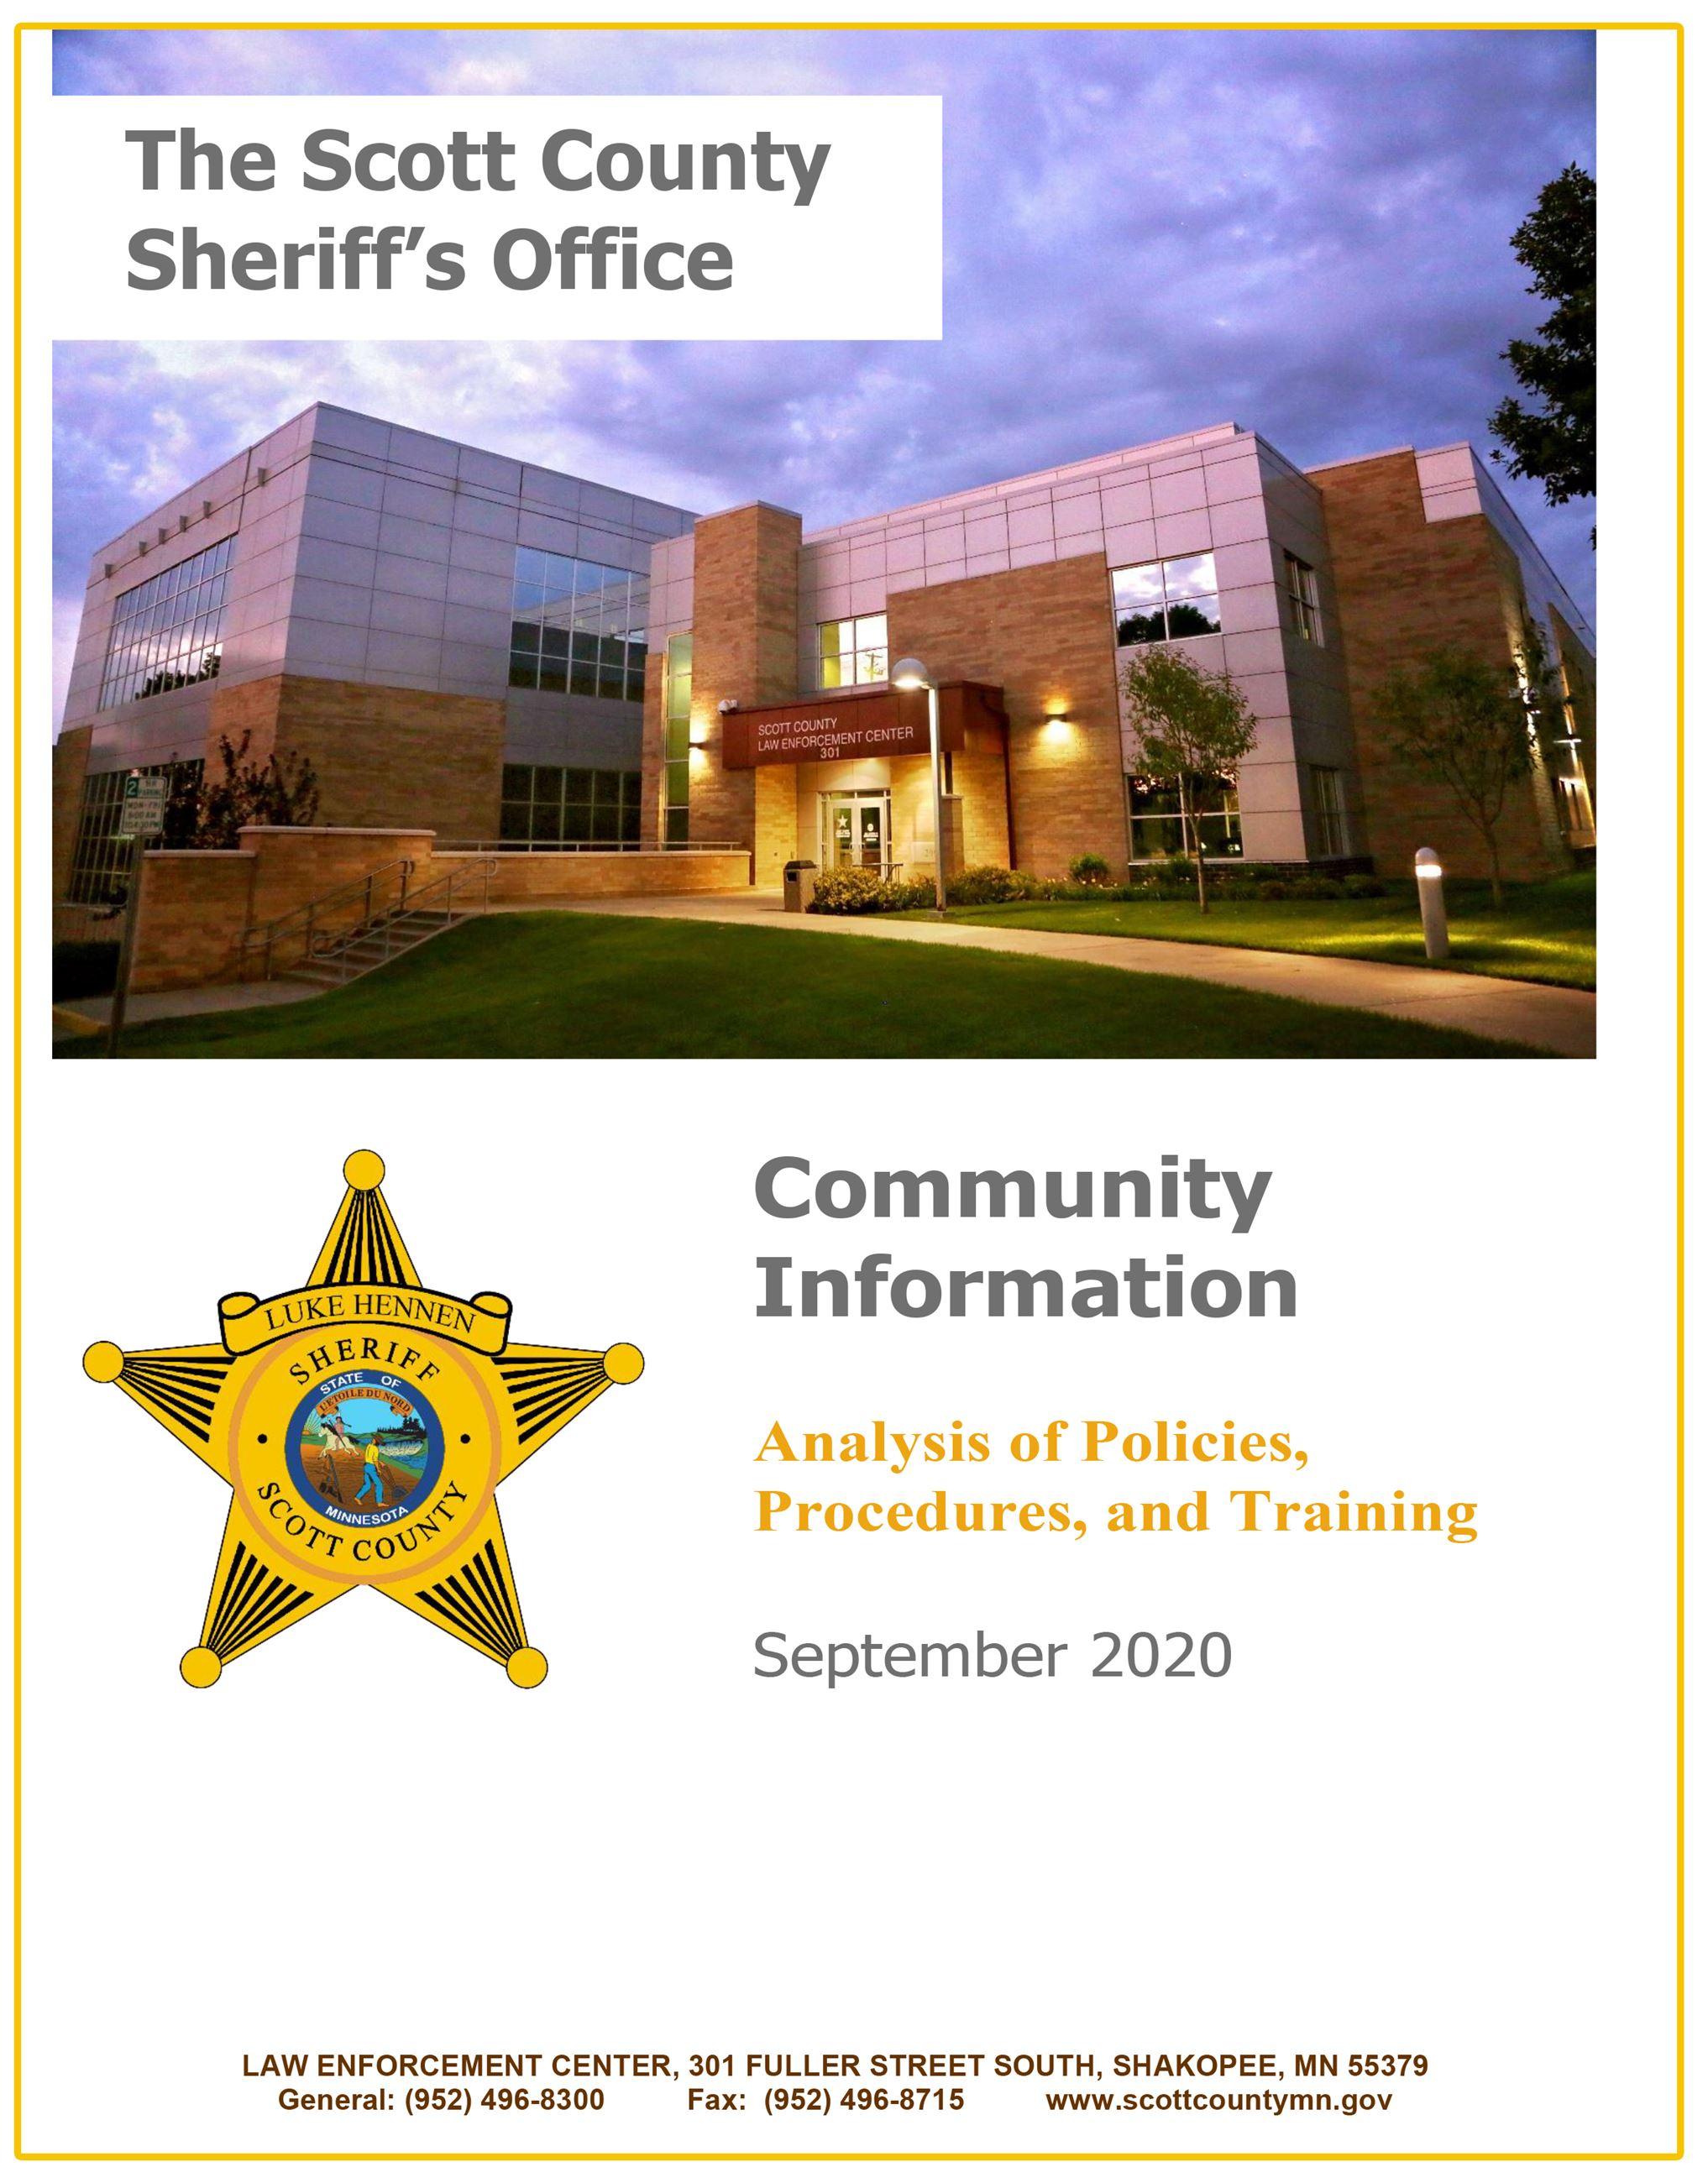 Community Information SCSO Analysis of Policies Procedures and Training 2020